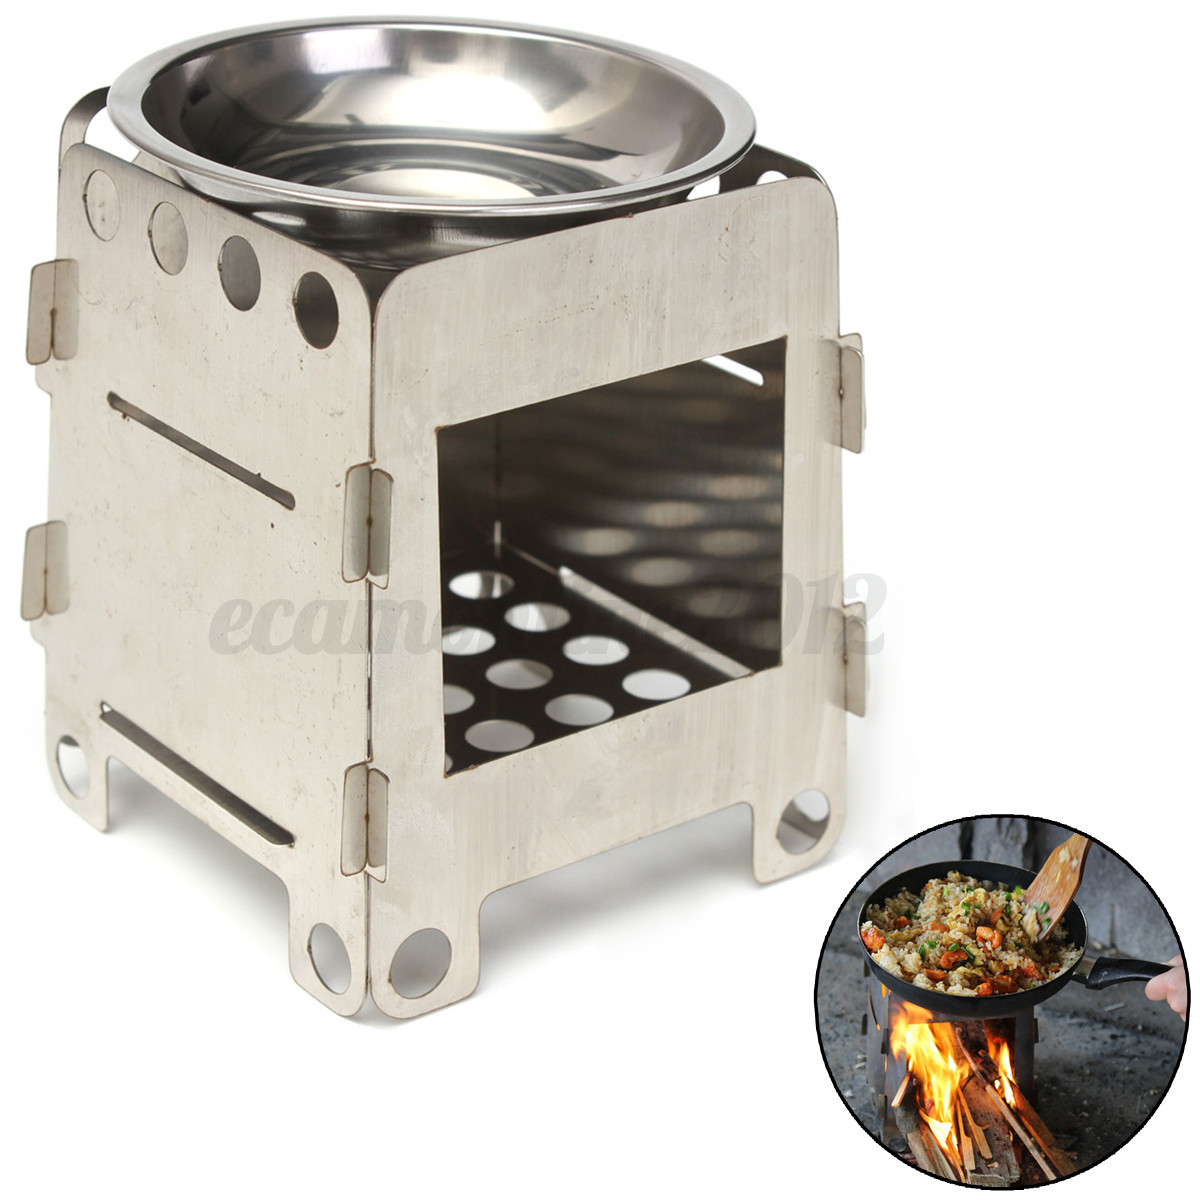 Portable stainless steel folding wood pocket alcohol stove for Outdoor wood cooking stove